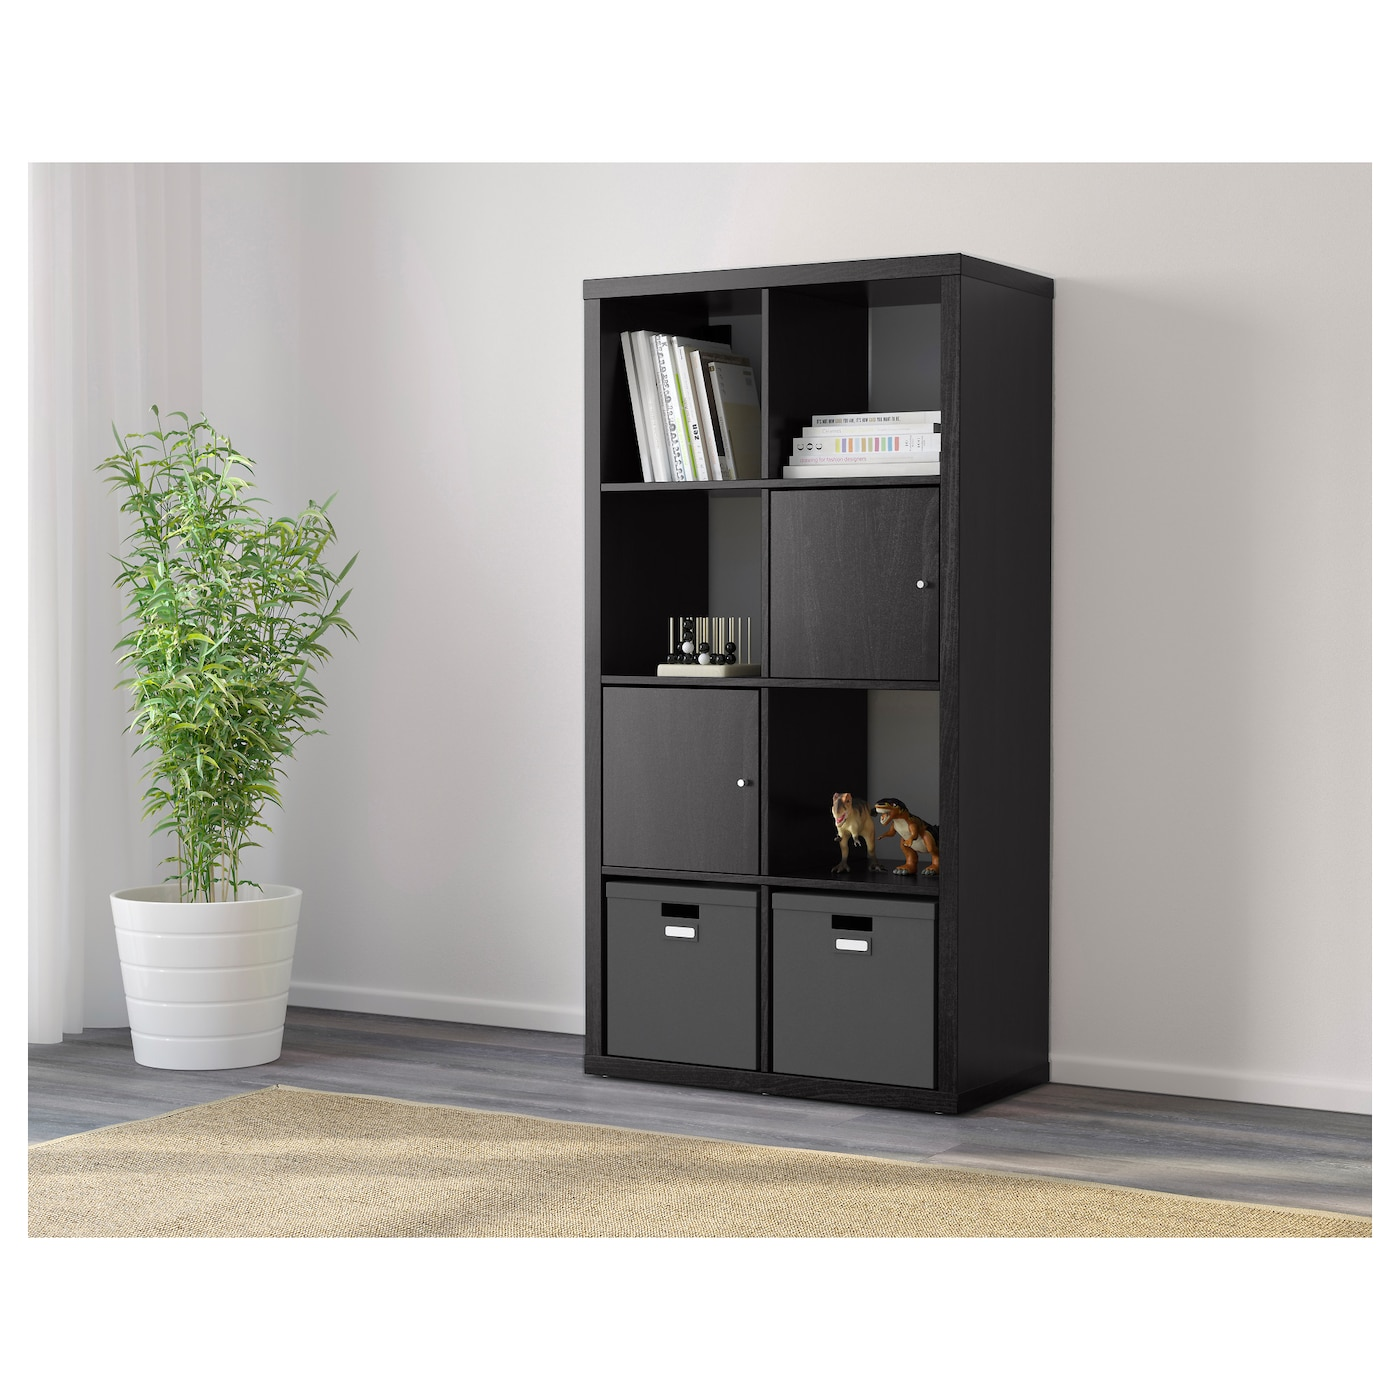 kallax shelving unit black brown 77 x 147 cm ikea. Black Bedroom Furniture Sets. Home Design Ideas